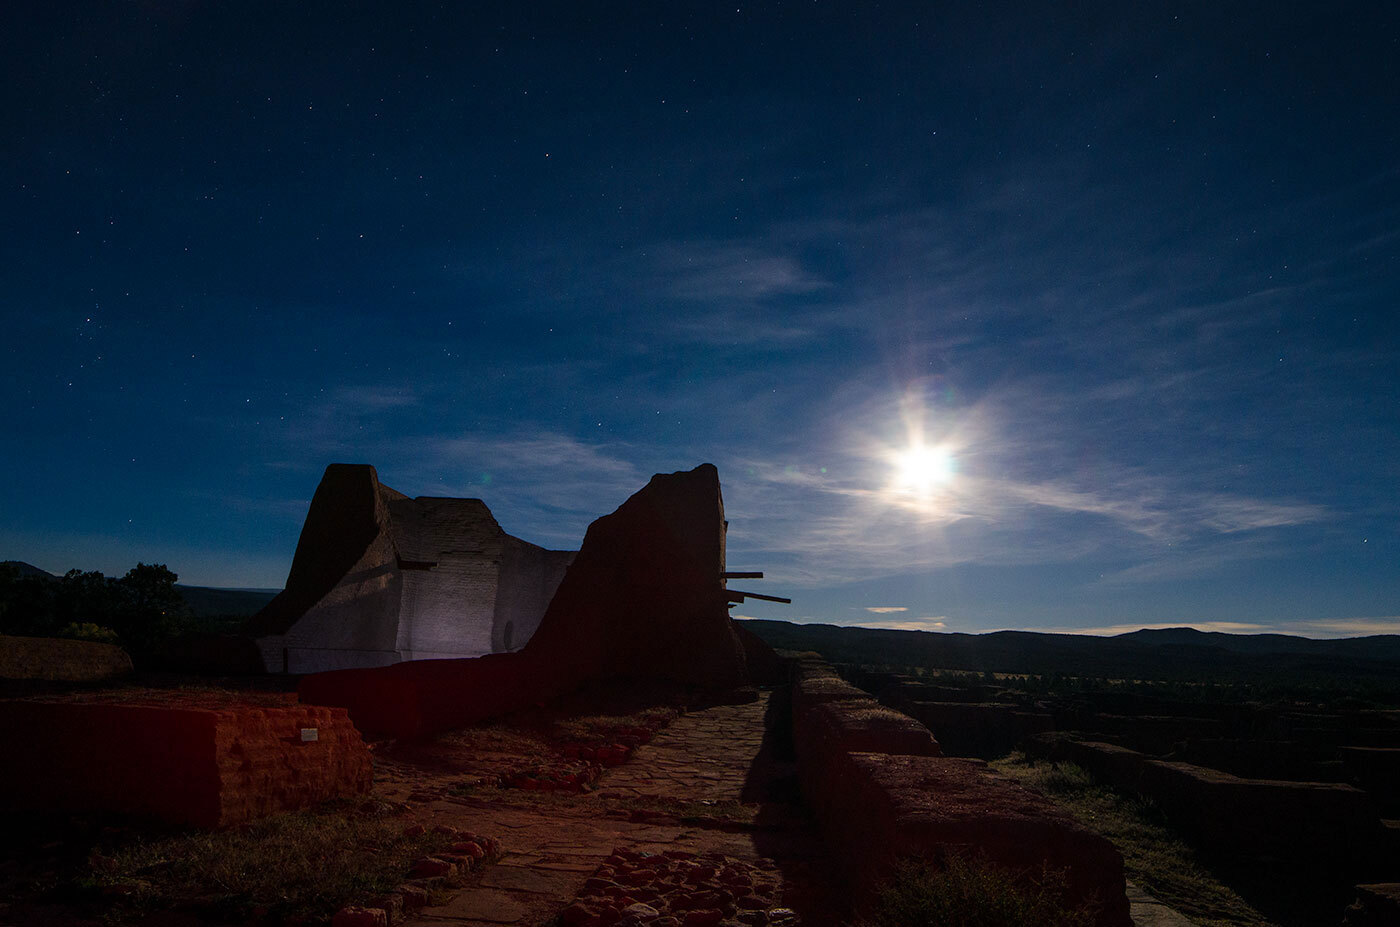 A bright Moon lights up the ruins of an old Spanish mission in New Mexico.